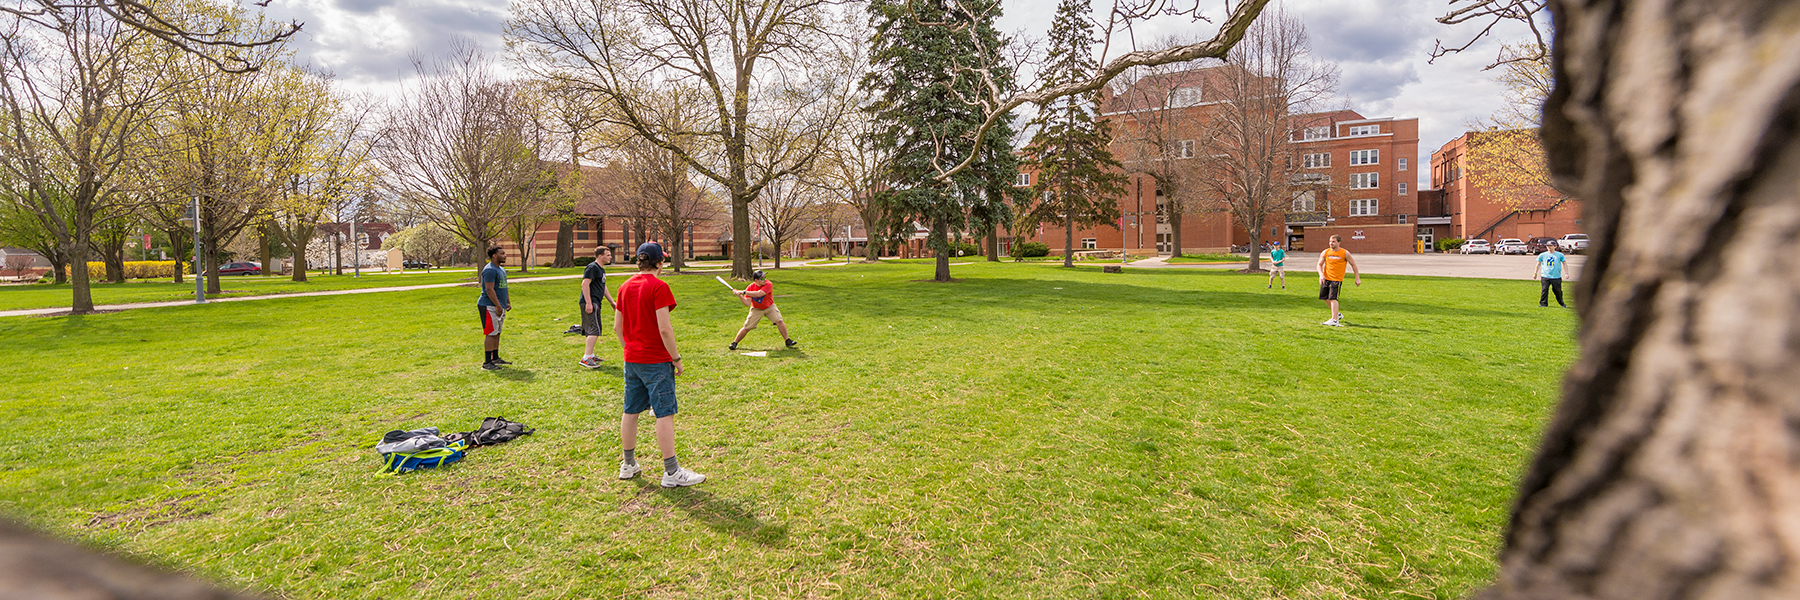 Wiffle ball game on campus green